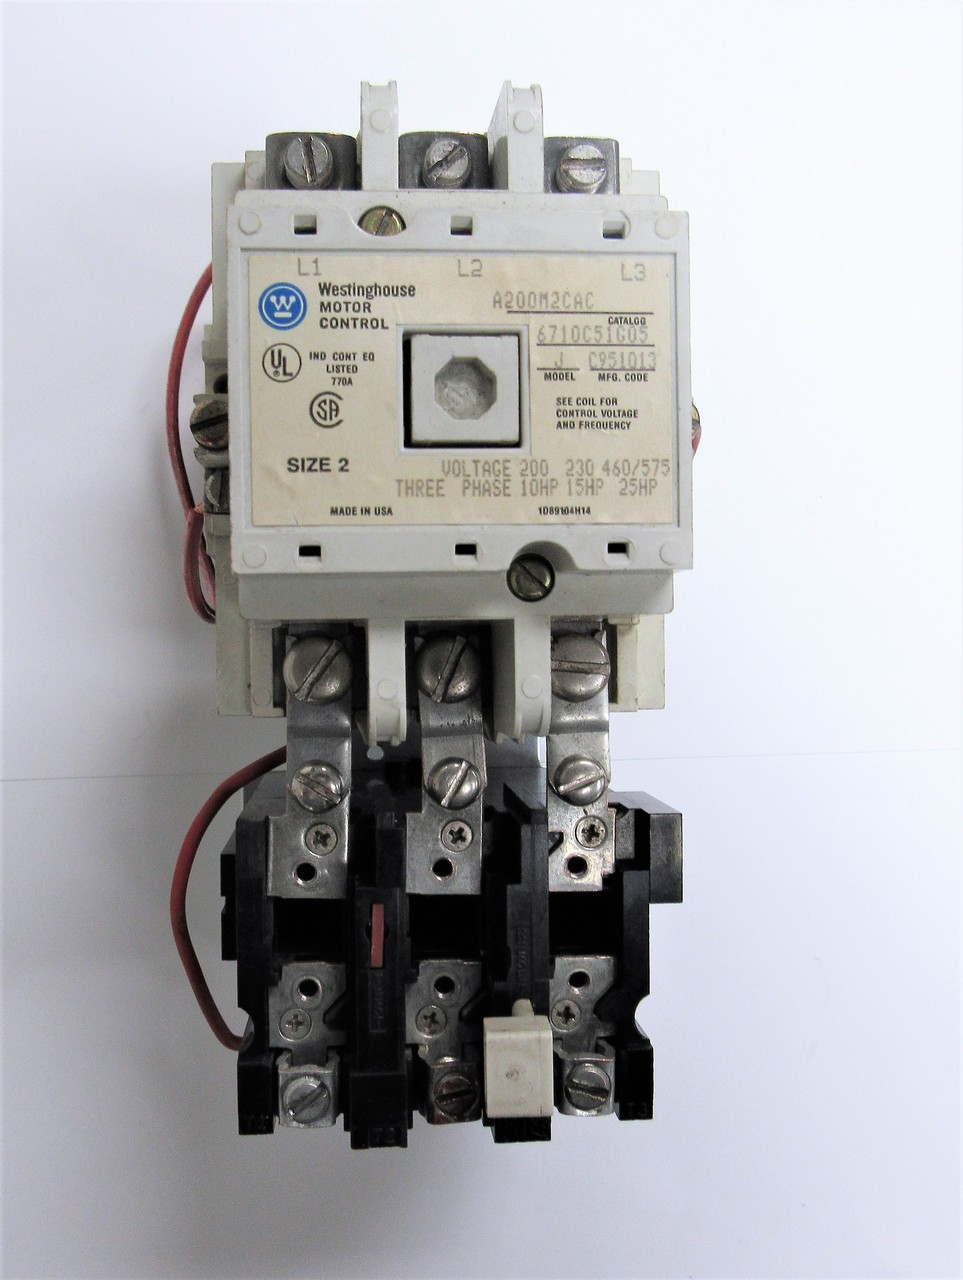 Westinghouse Motor Control A200M2CAC, 3P, Size 2 Model J with 120V on